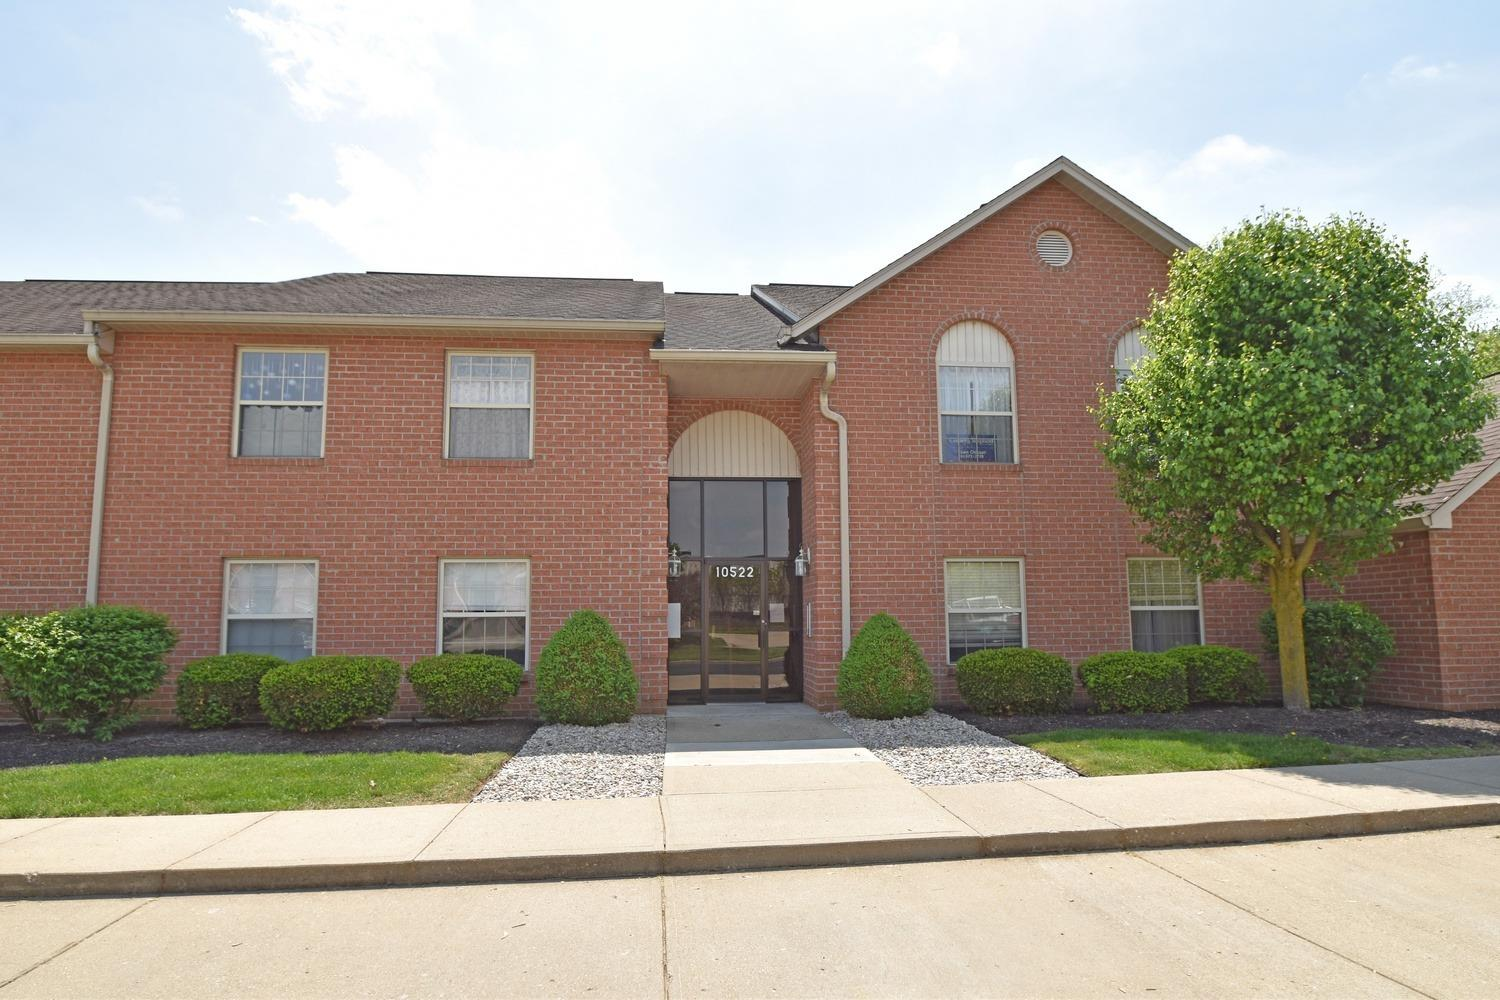 10522 West Rd, 16 Harrison, OH